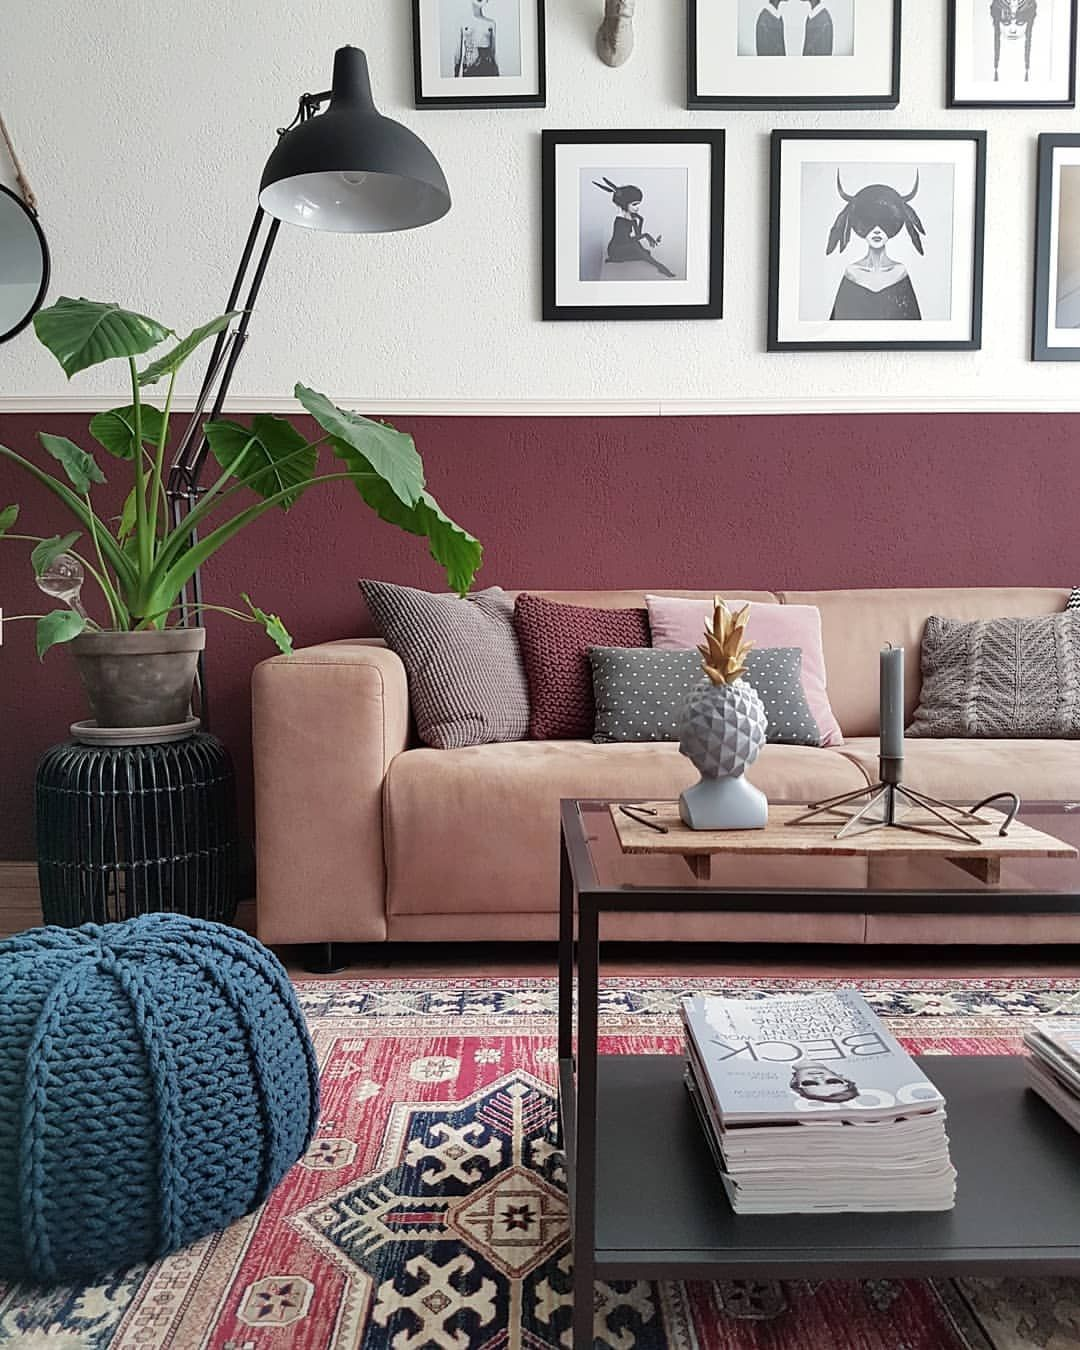 Two Tone Wall With Pink Sofa Colourful Rug And Gallery Wall In The Living Room Pink Sofa Living Room Pink Rug Living Room Pink Couch Living Room